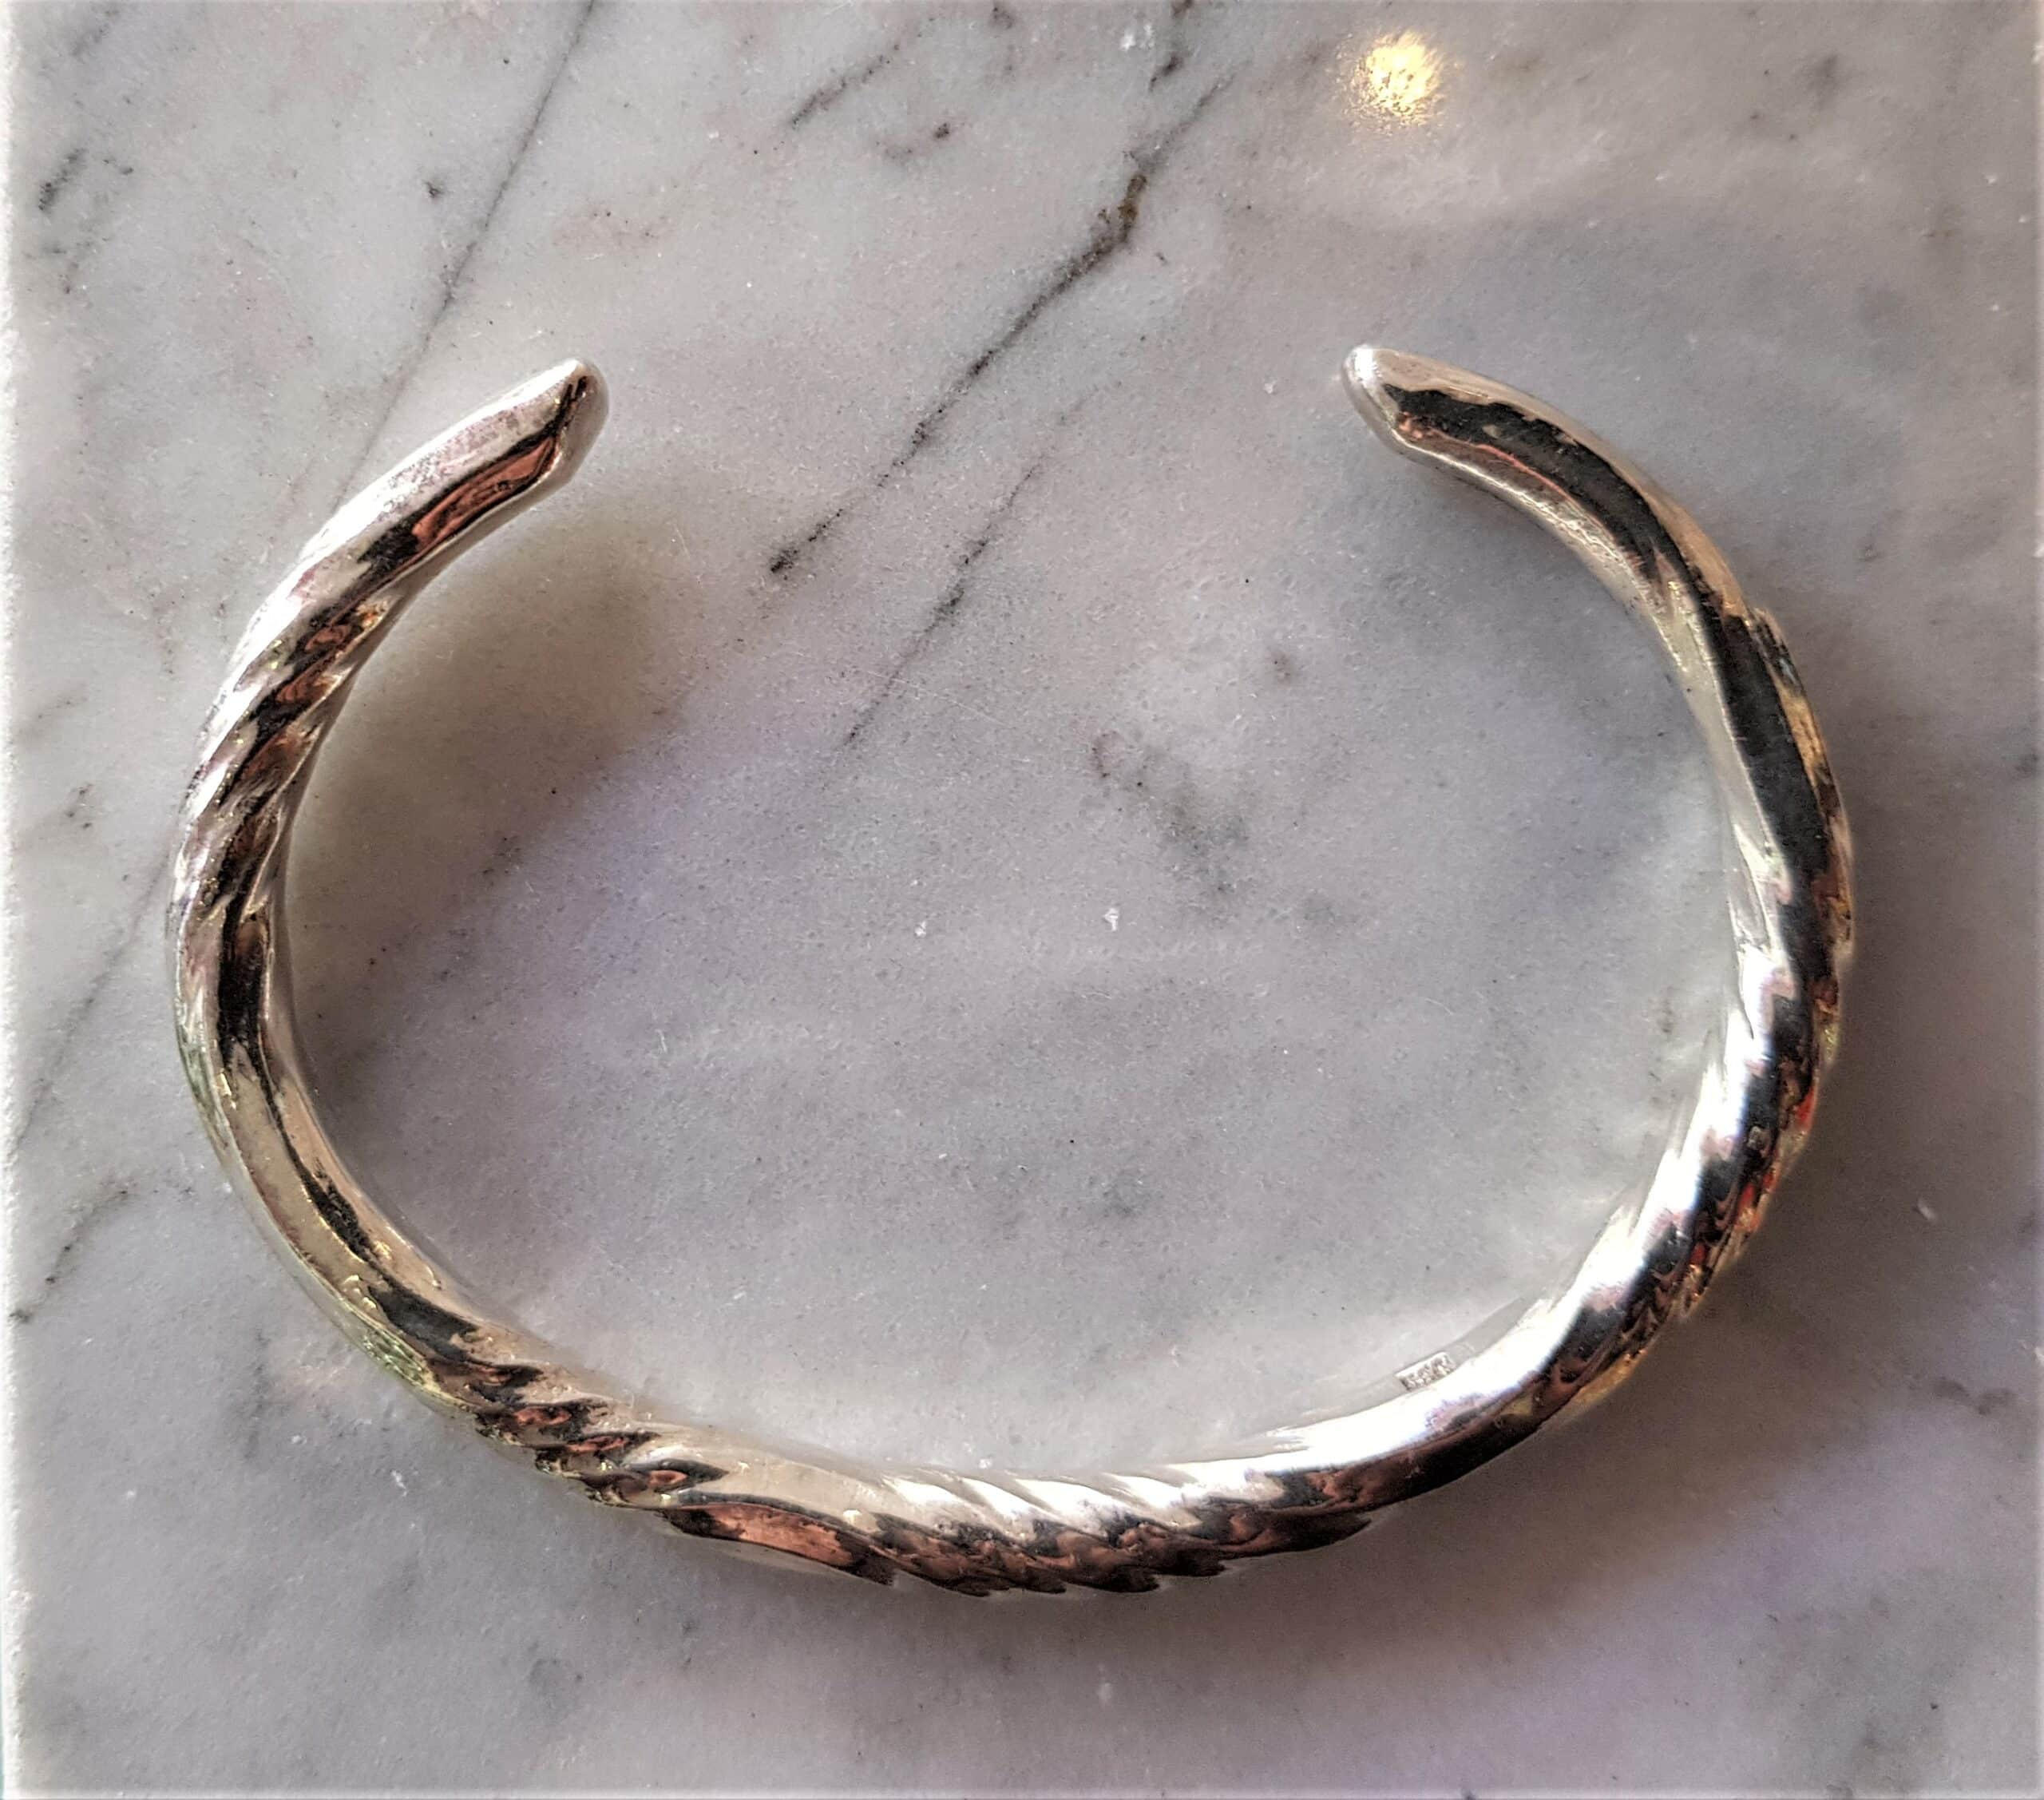 Polished Sterling Silver Forged Water Twist Clutch Bangle By Corinne Lomon